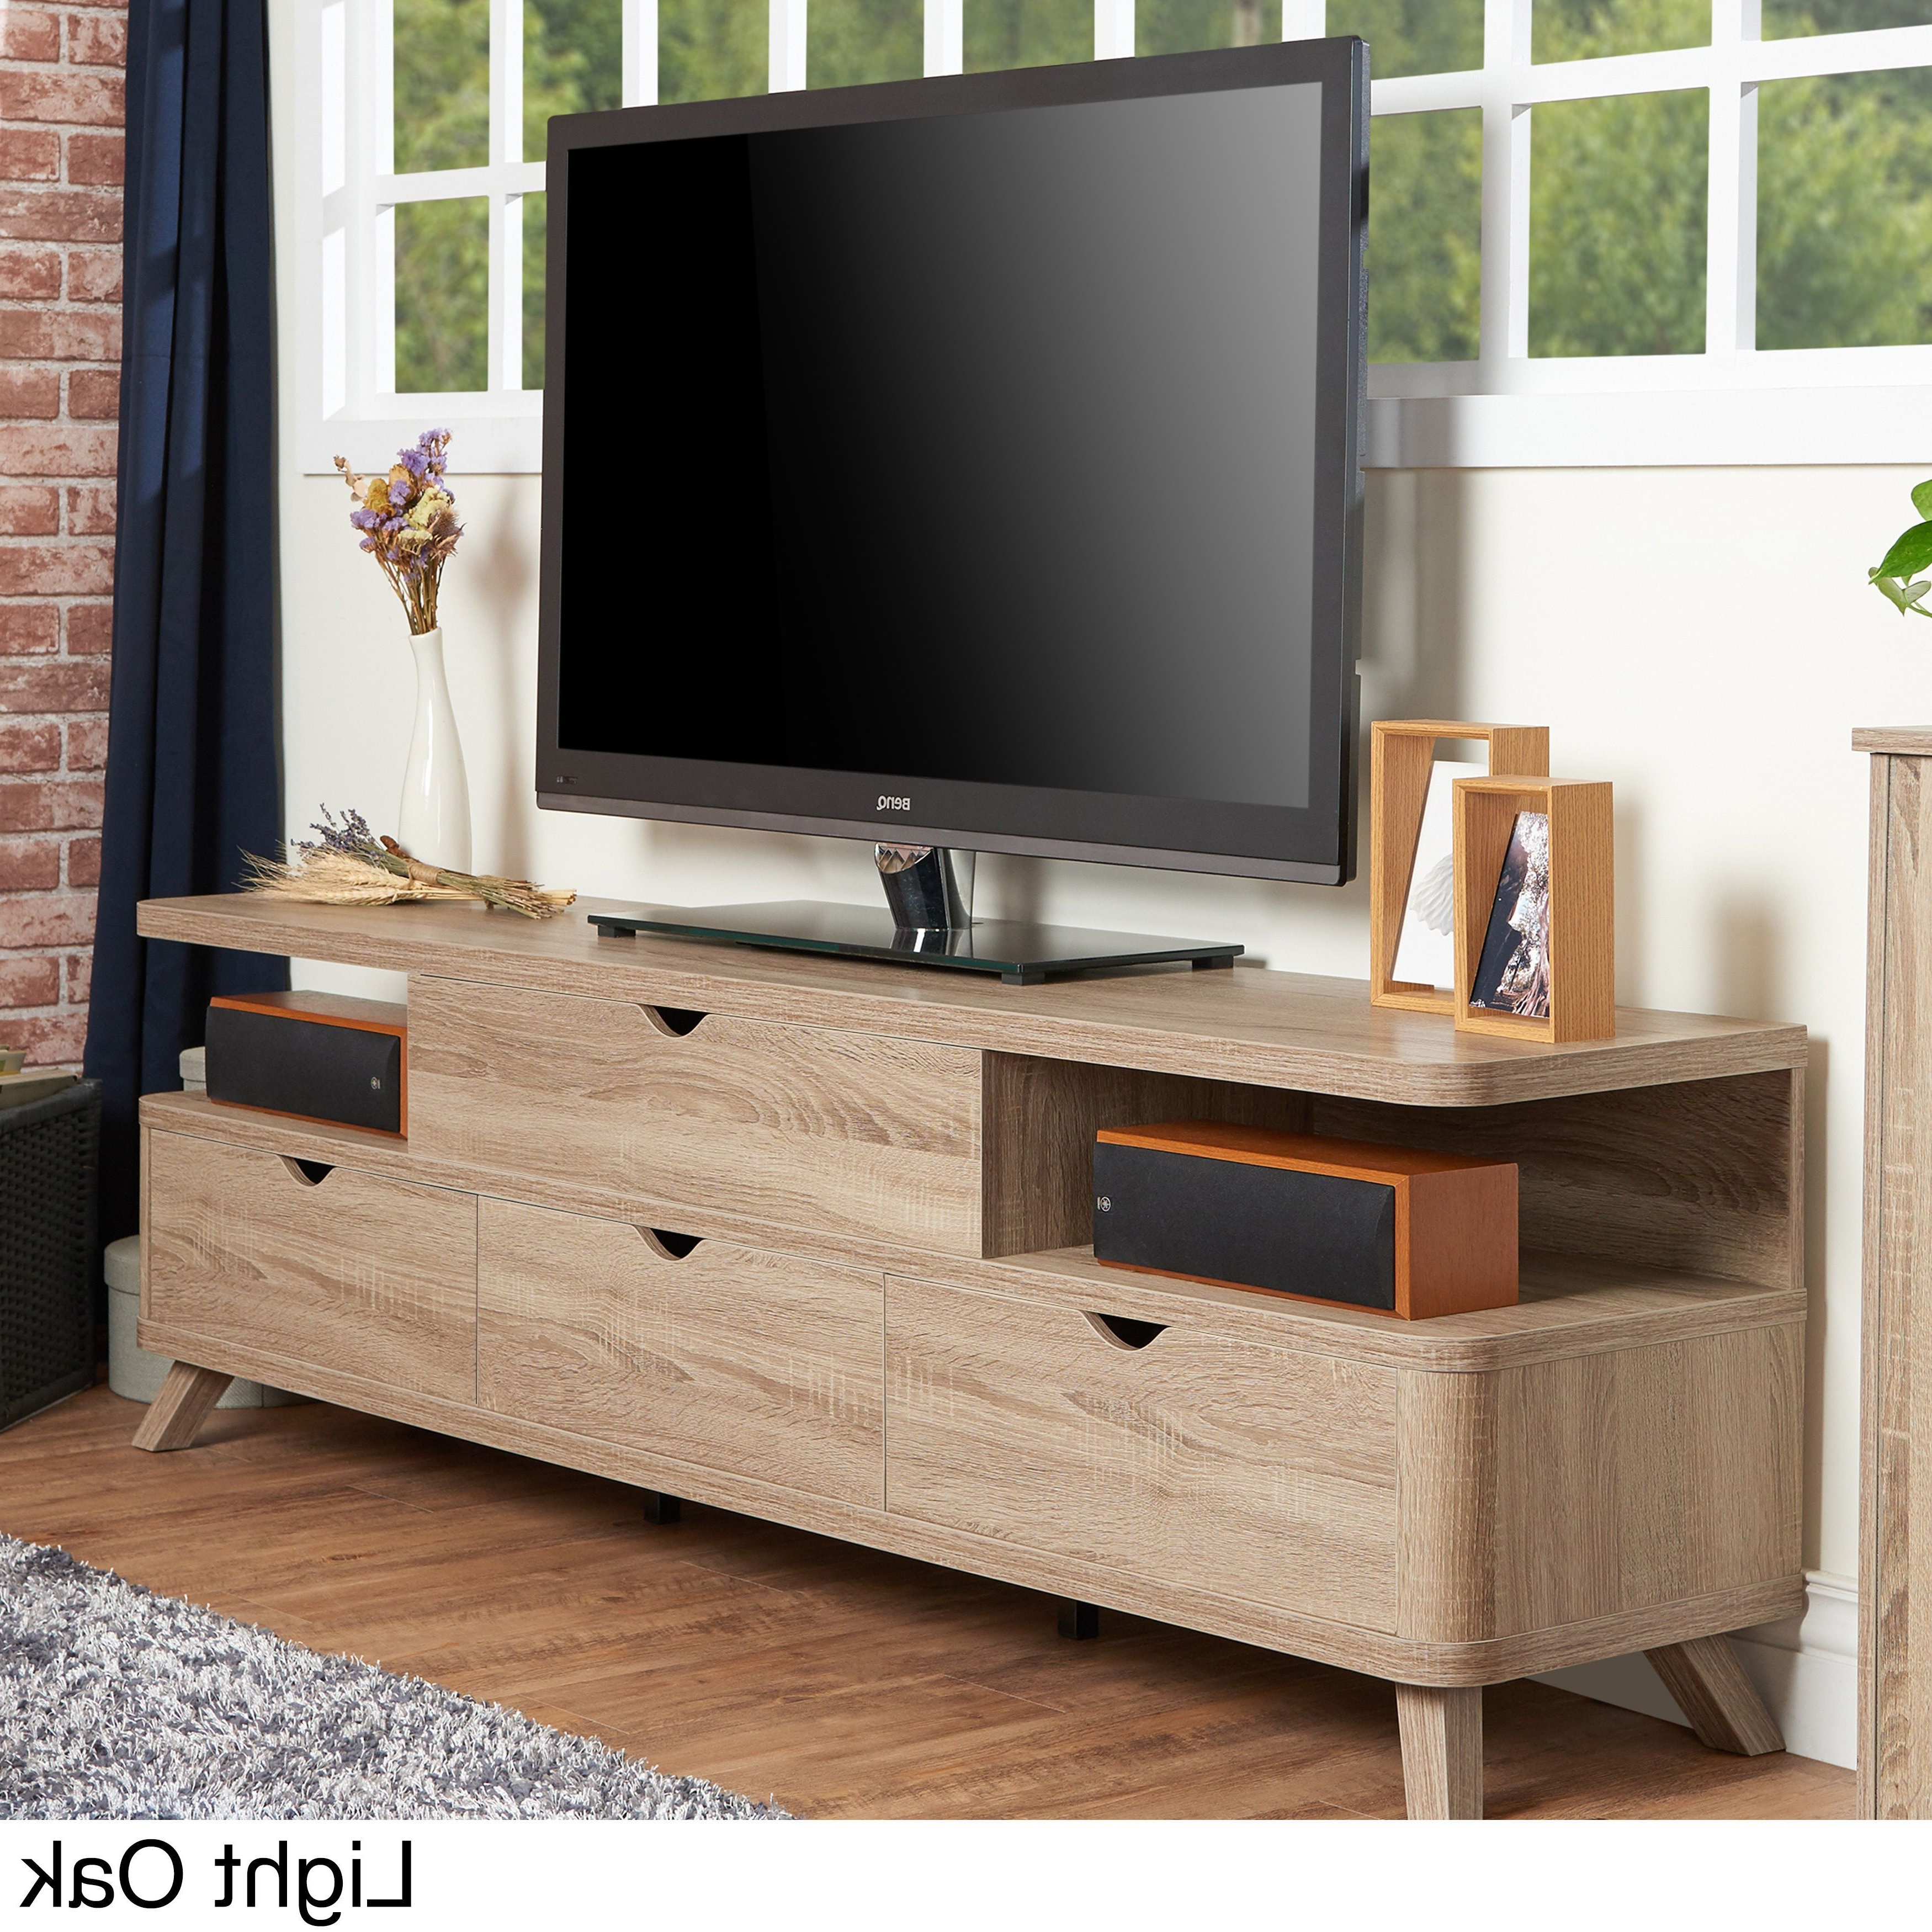 Well Known Tv Stands Rounded Corners For With Its Flared Legs And Rounded Corners, This Tv Stand Adds (View 10 of 20)